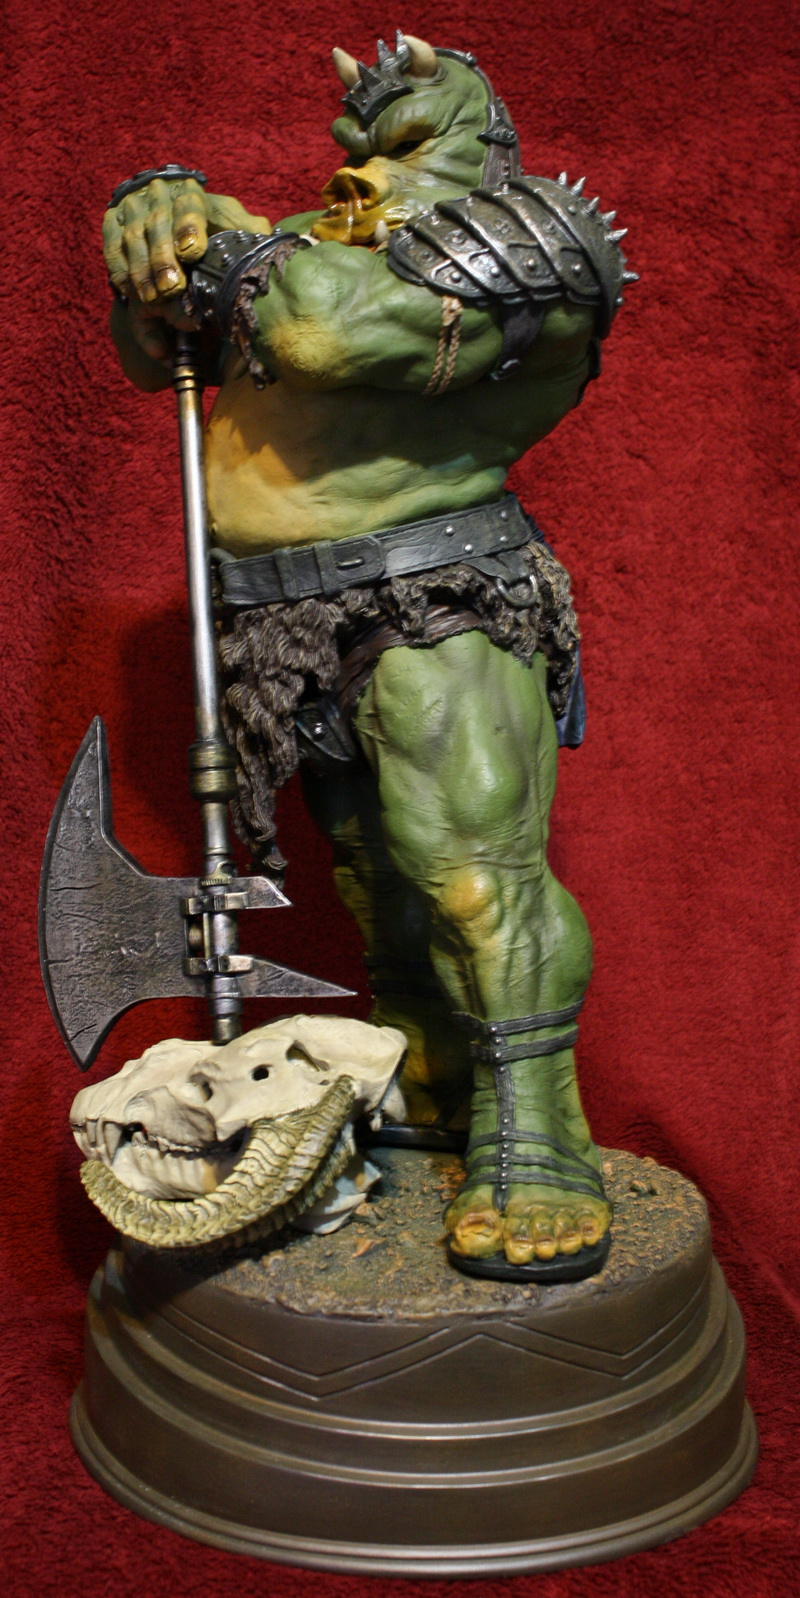 STAR WARS: GAMORREAN EXECUTIONER Mythos statue 18